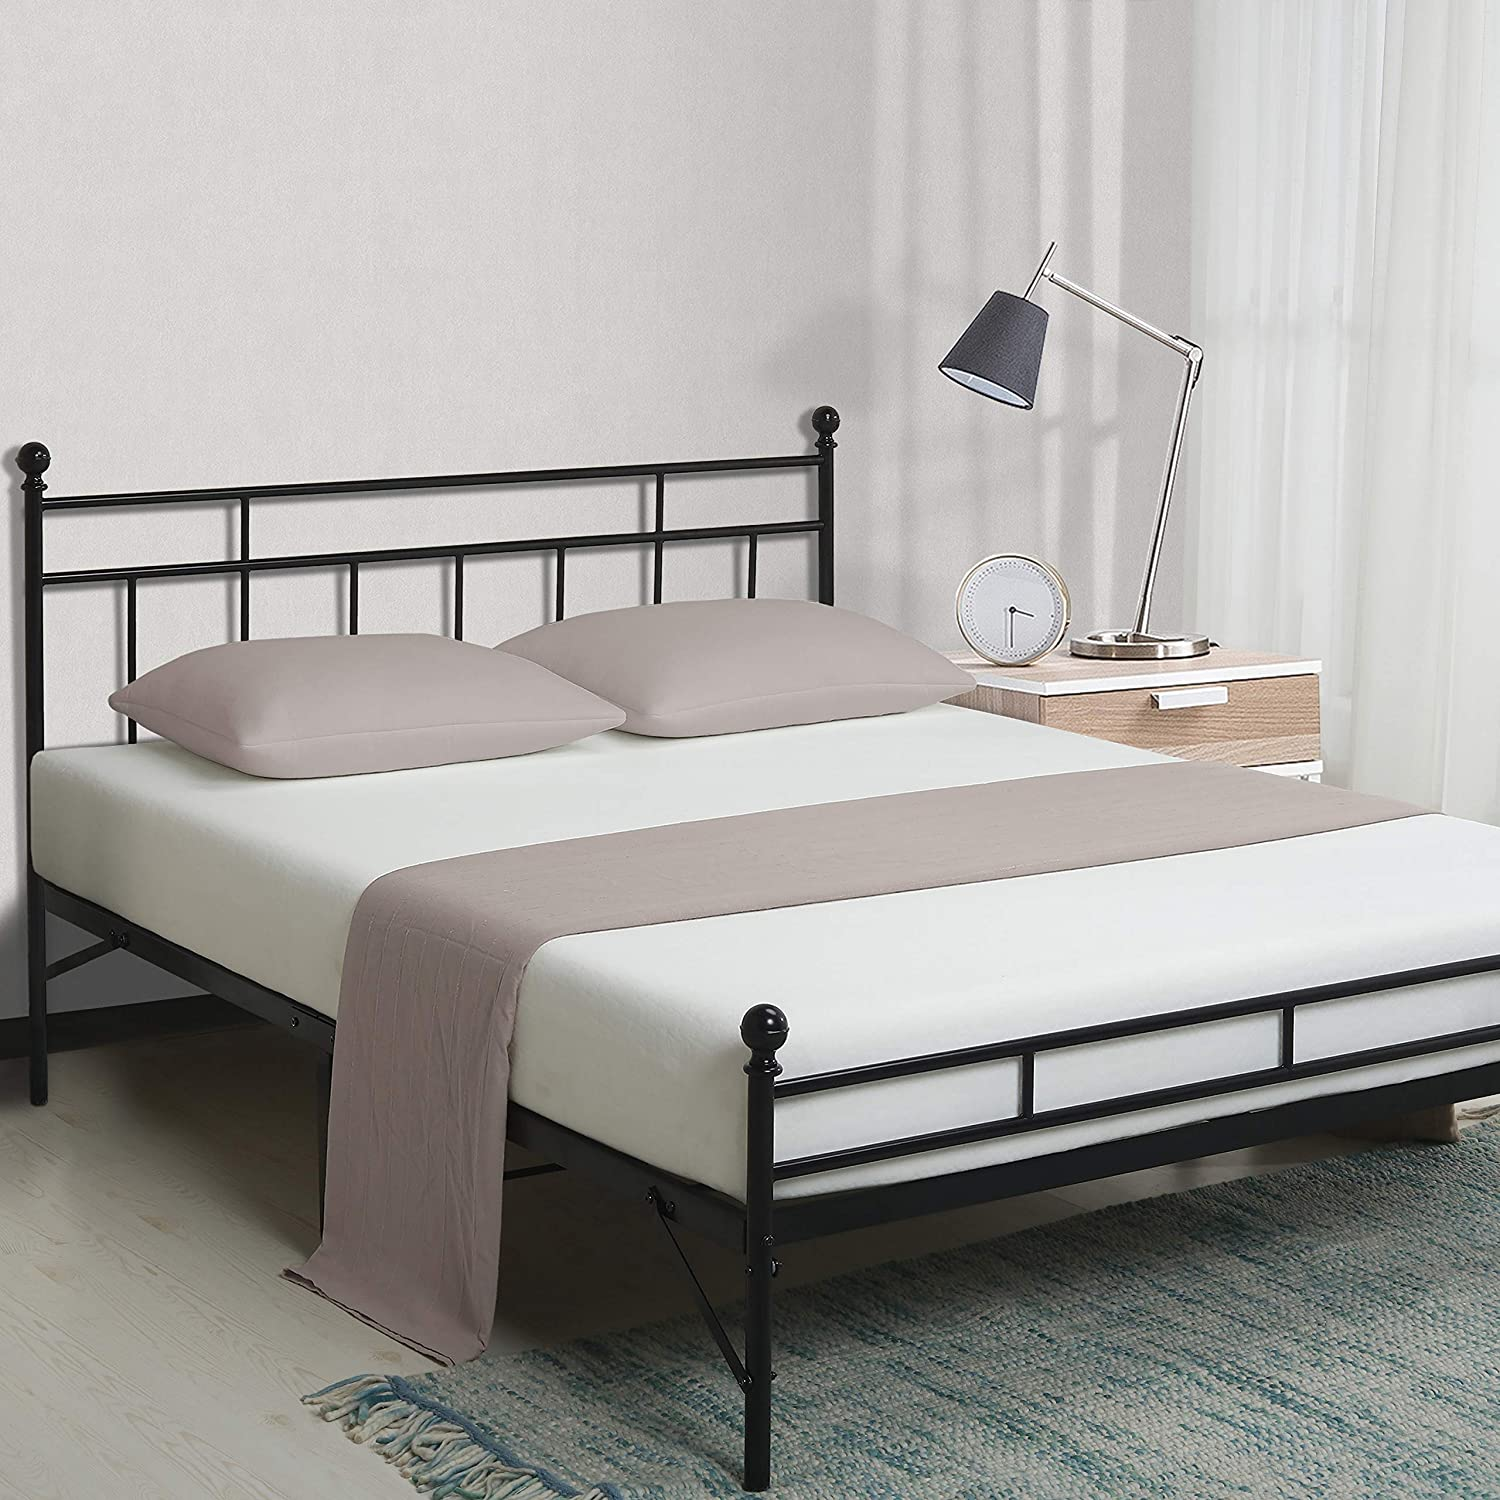 Best Price Mattress Queen Bed Frame – 12 Inch All-in-One Easy Setup Metal Platform Bed w Steel slats and Headboard, Mattress Foundation No Box Spring Needed , Black